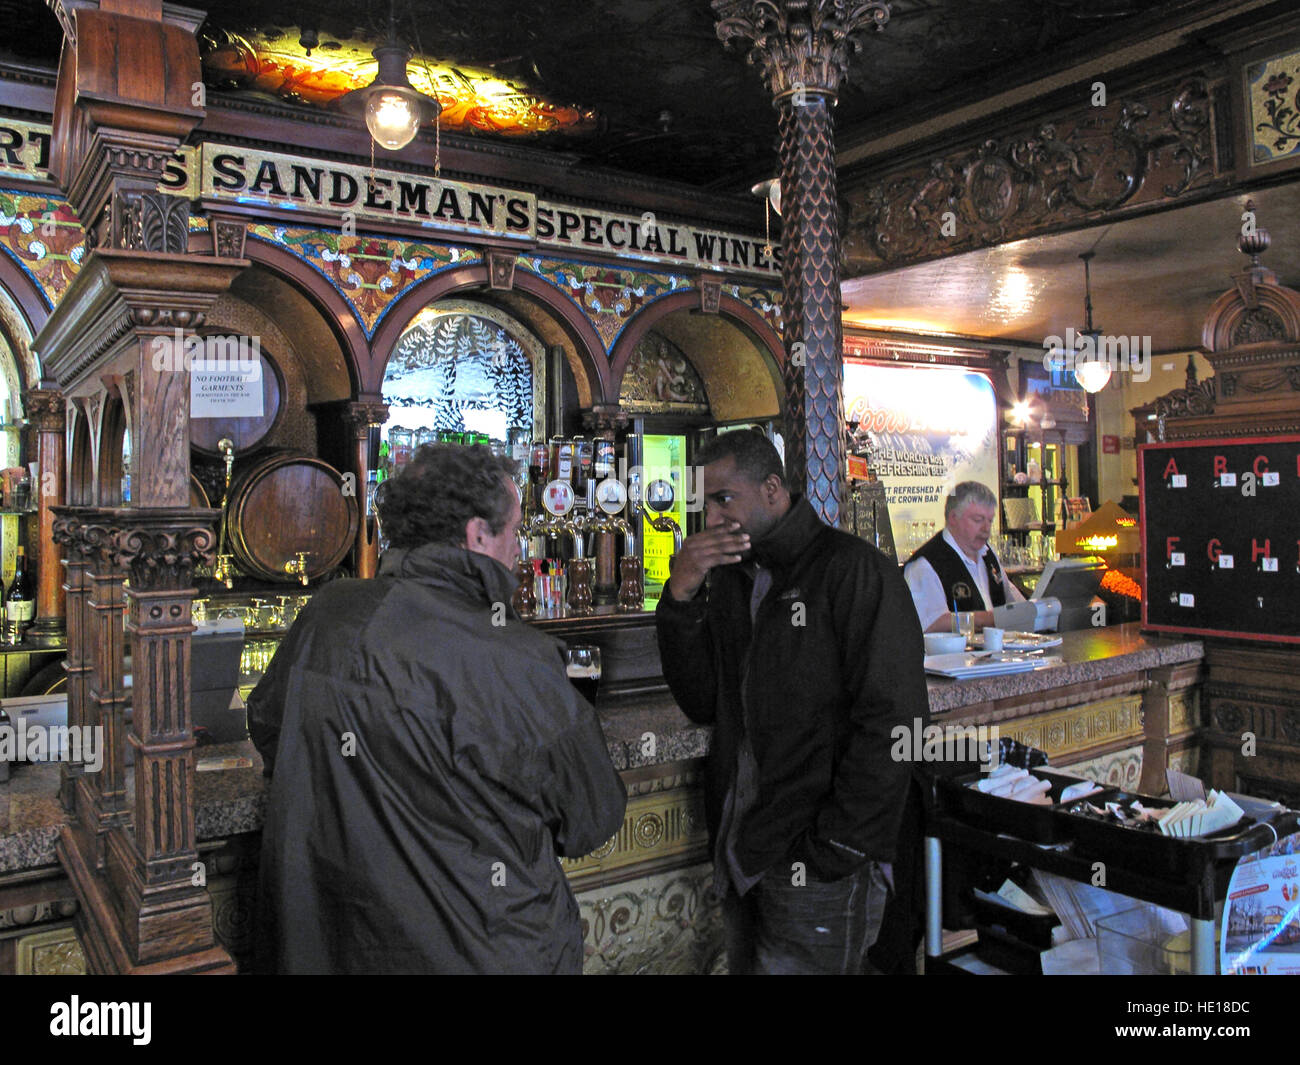 chat,chatting,men,friends,blokes,Great,Street,bars,beer,pub,public,house,interior,exterior,historic,history,gin,palace,Victoriana,Liquor,Saloon,Liquor Saloon,National Trust,great,lounge,famous,Crown Bar,unique,BT2,Felix OHanlon,Tavern,ppl,people,punters,lager,ale,realale,CAMRA,bar,bars,pubs,pub,GoTonySmith,@HotpixUK,Tony,Smith,UK,GB,Great,Britain,United,Kingdom,Irish,British,Ireland,problem,with,problem with,issue with,NI,Northern,Northern Ireland,Belfast,City,Centre,Art,Artists,the,troubles,The Troubles,Good Friday Agreement,Peace,honour,painting,wall,walls,tribute,republicanism,Fight,Justice,West,Beal,feirste,martyrs,social,tour,tourism,tourists,urban,six,counties,6,backdrop,county,Antrim,ornate,culture,Buy Pictures of,Buy Images Of,Images of,Stock Images,Tony Smith,United Kingdom,Great Britain,British Isles